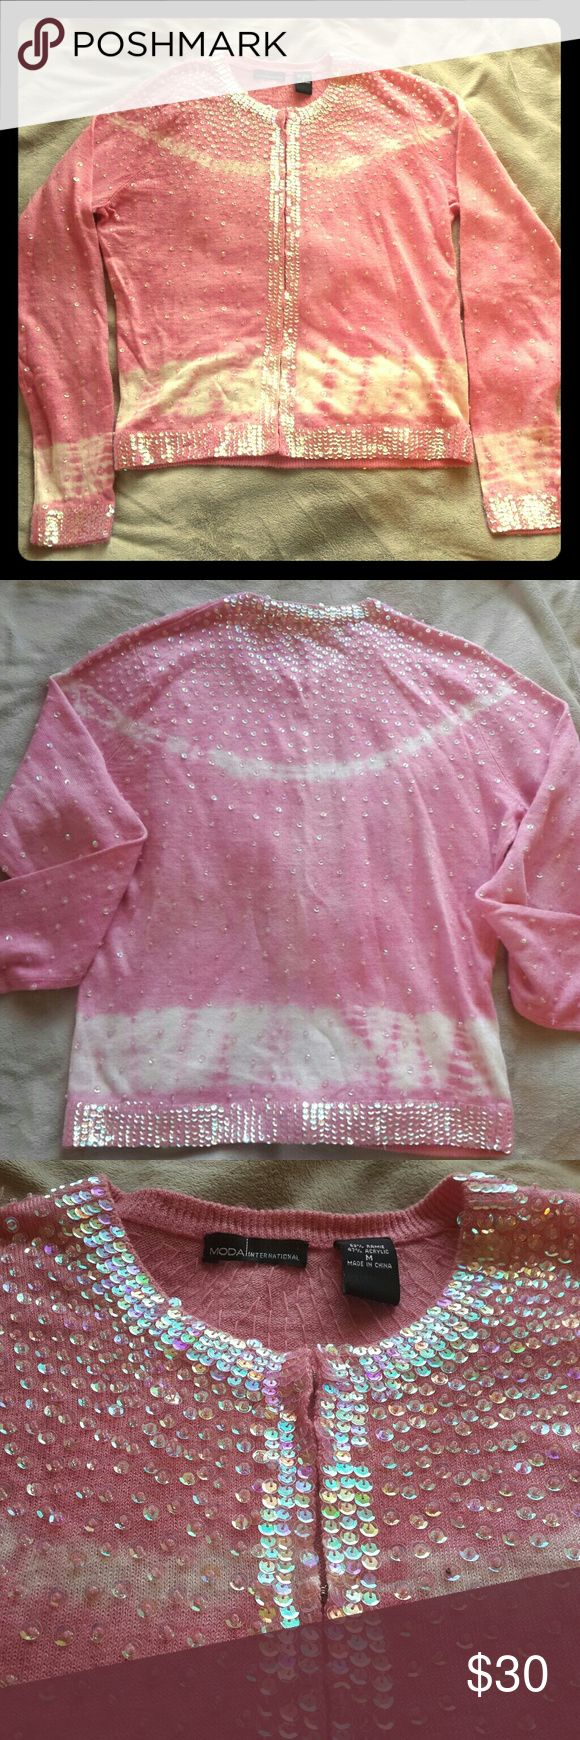 """Tie-Dyed Sequined Sweater Do you love to sparkle and shine? Then this is the cardigan for you! Size M, B ~38"""", W ~33"""", L ~22.5"""", sleeves ~25"""". Bought from Victoria' Secret catalog and never worn. The sequins look clear or iridescent depending on the light.  There is one on the top right shoulder that's loose. Easy fix (though you'd never miss it, as this sweater is LOADED w/sequins!). Hook & eye closures.  Don't like the price? Send me an offer! Moda International Sweaters Cardigans"""